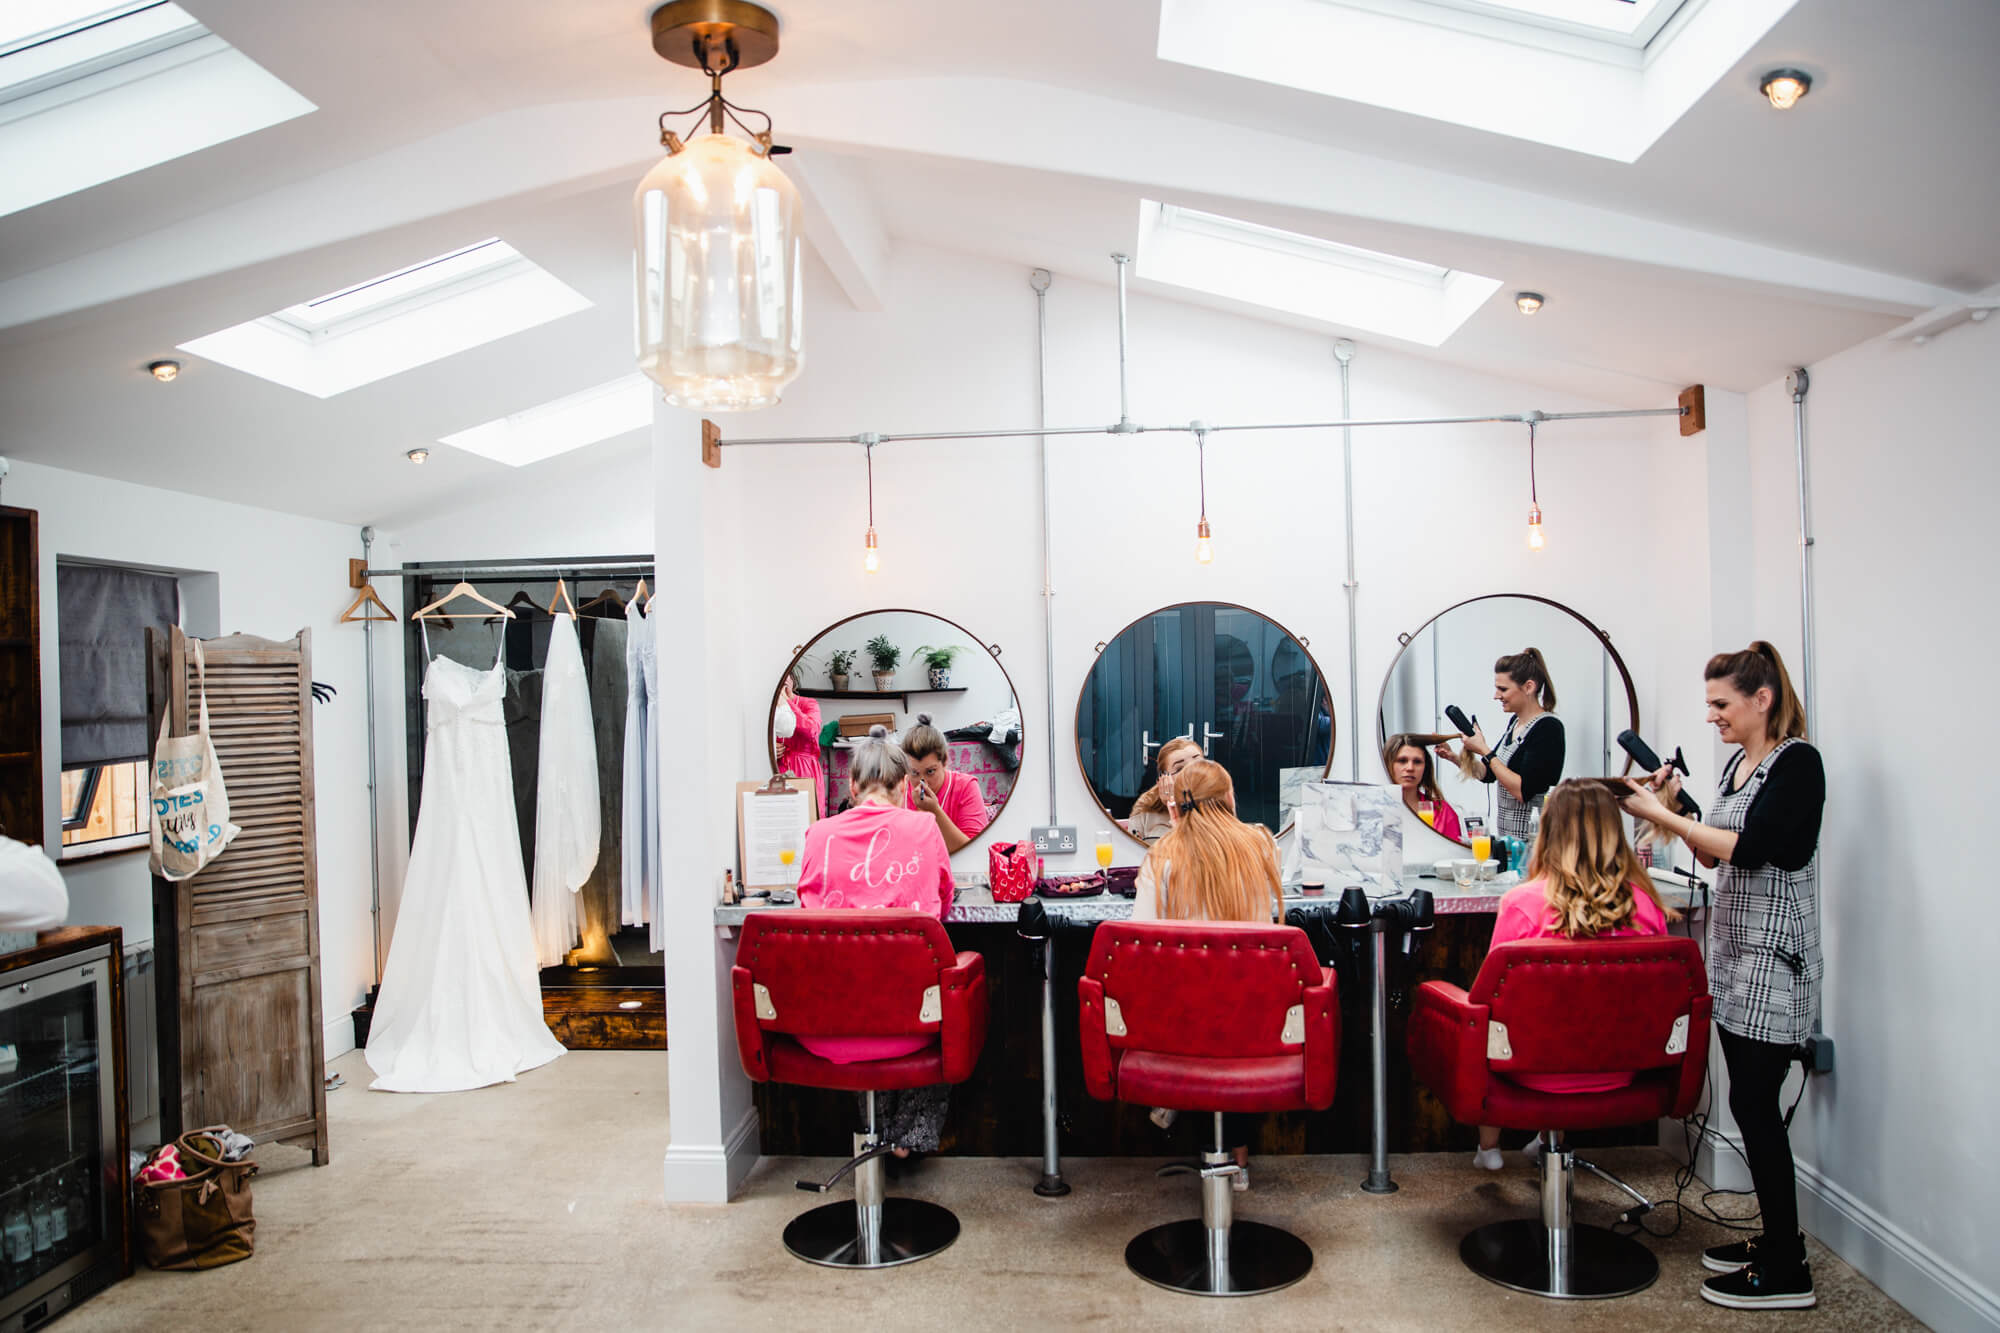 wide angle lens photograph inside owen house wedding barn bridal suite as bridesmaids apply make-up